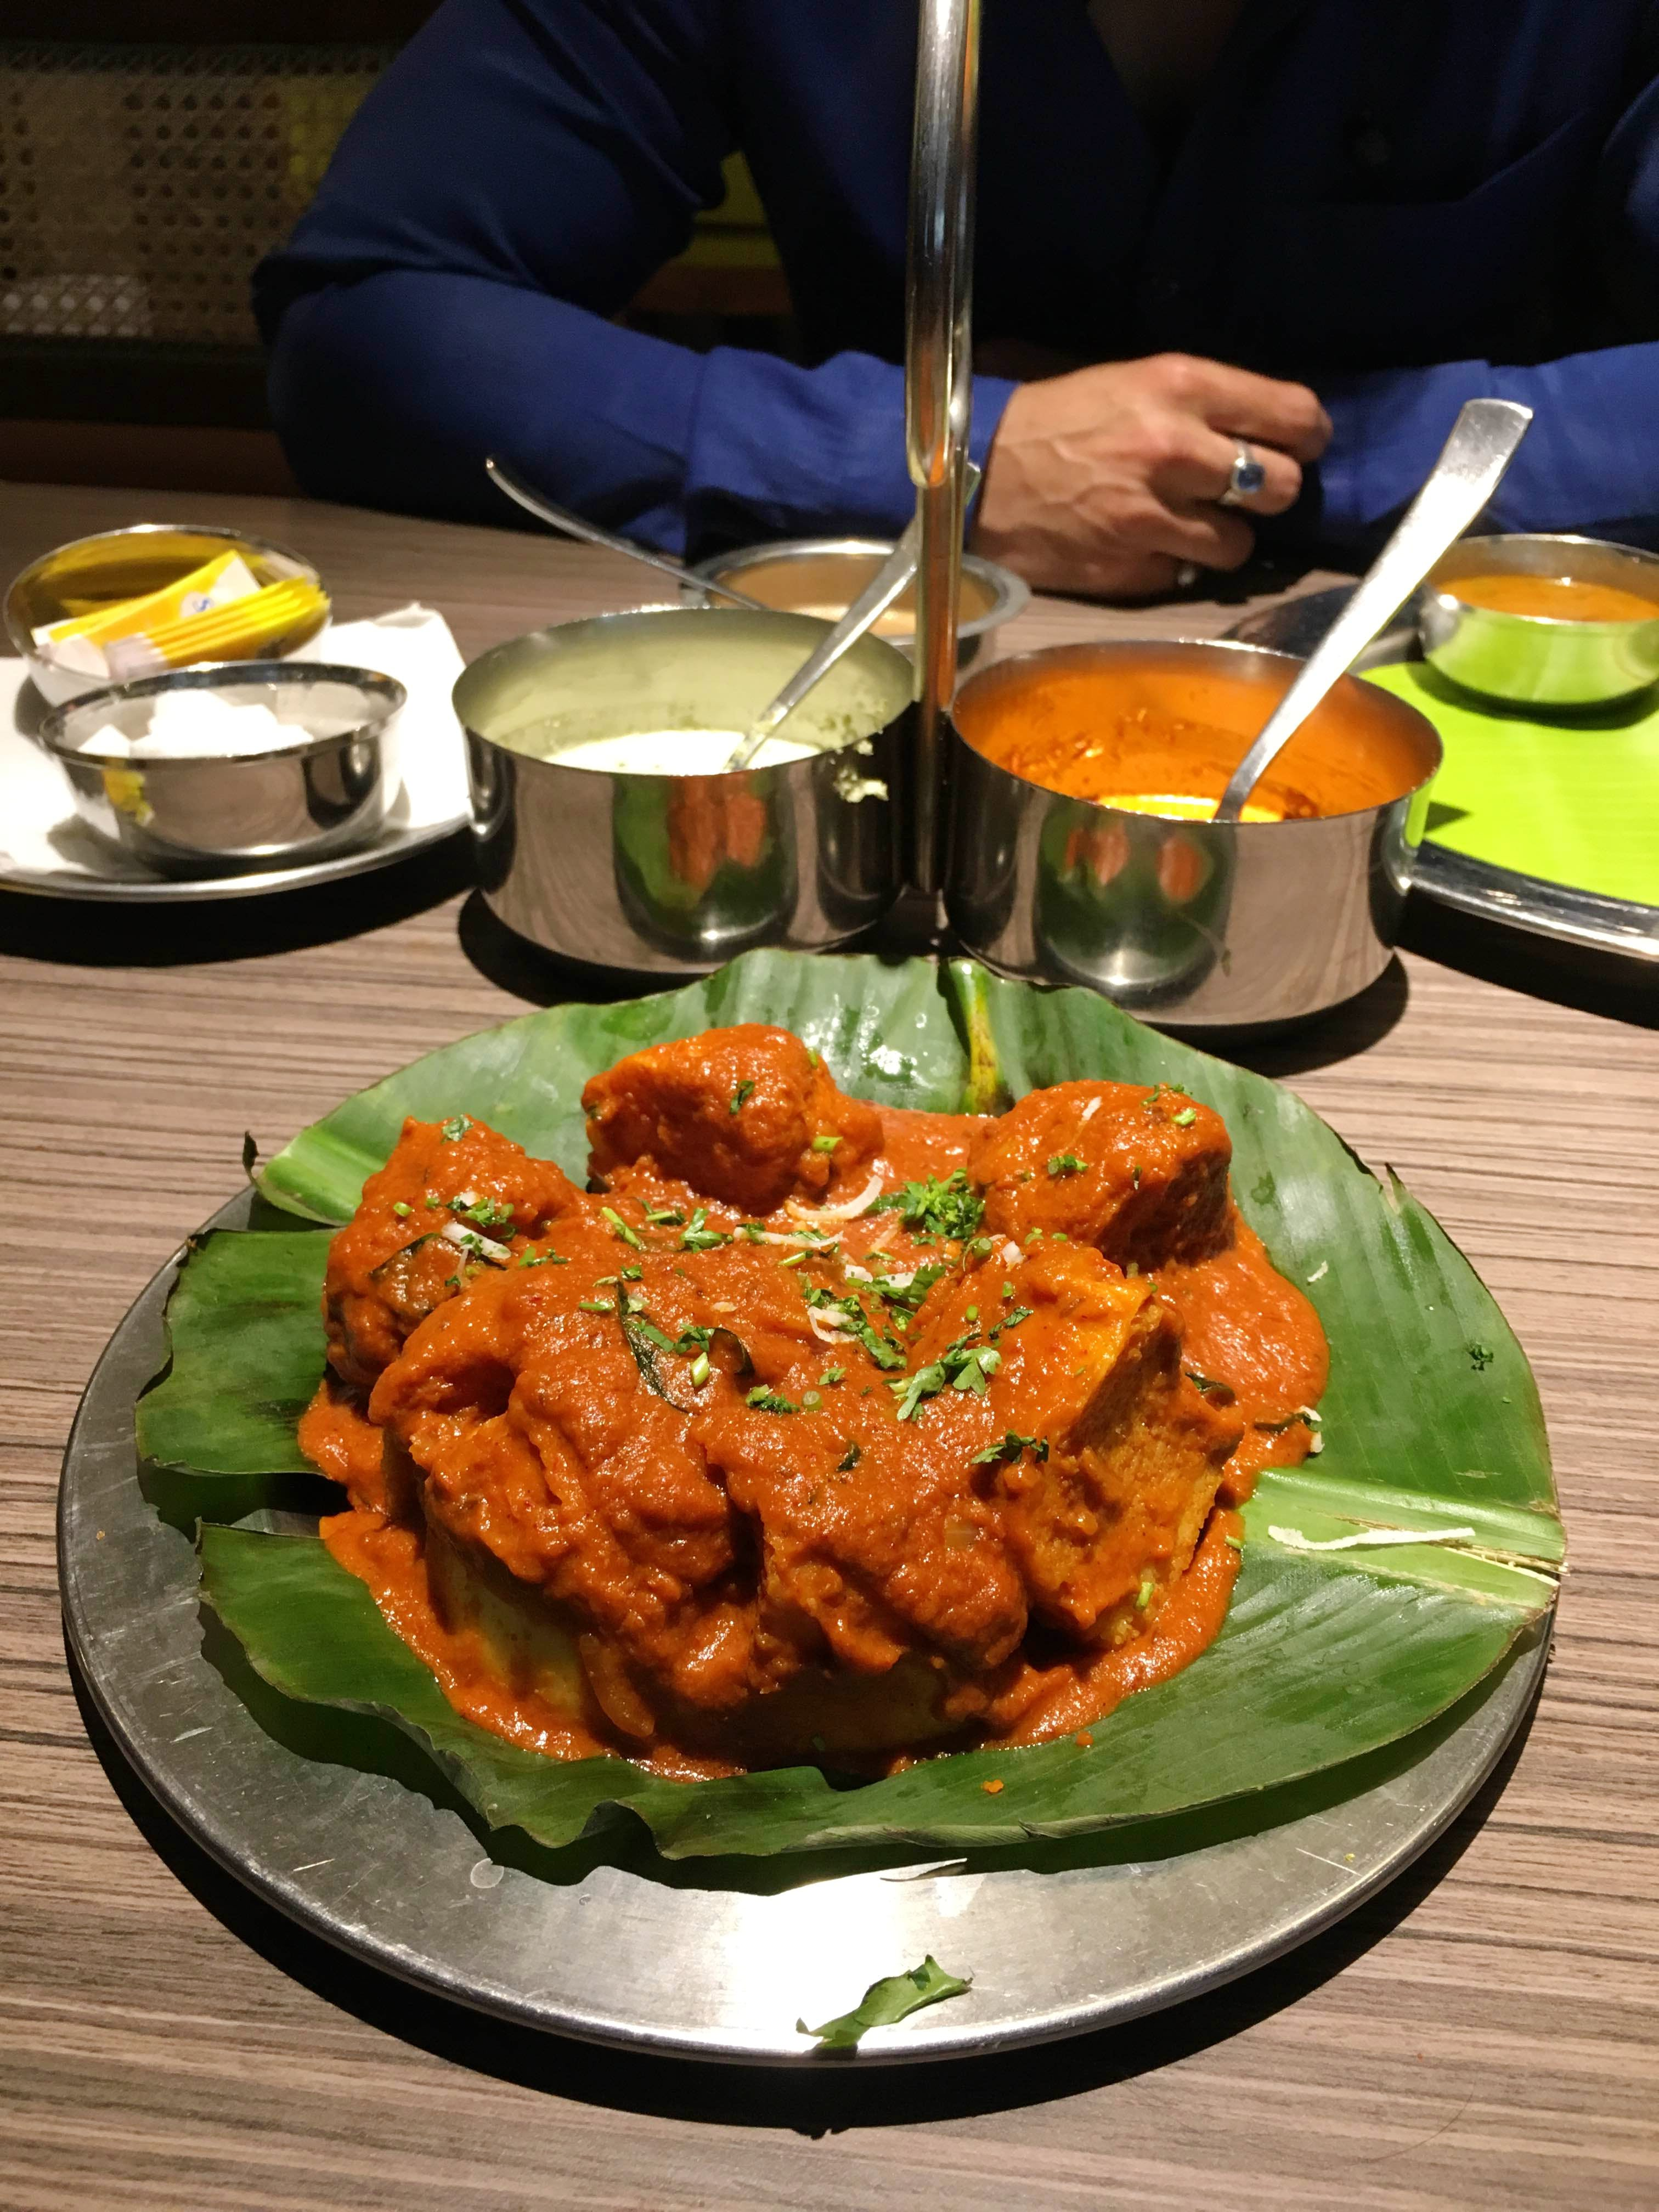 Dish,Food,Cuisine,Ingredient,Fried food,Produce,Pakora,Chicken 65,Indian cuisine,Kimchijeon